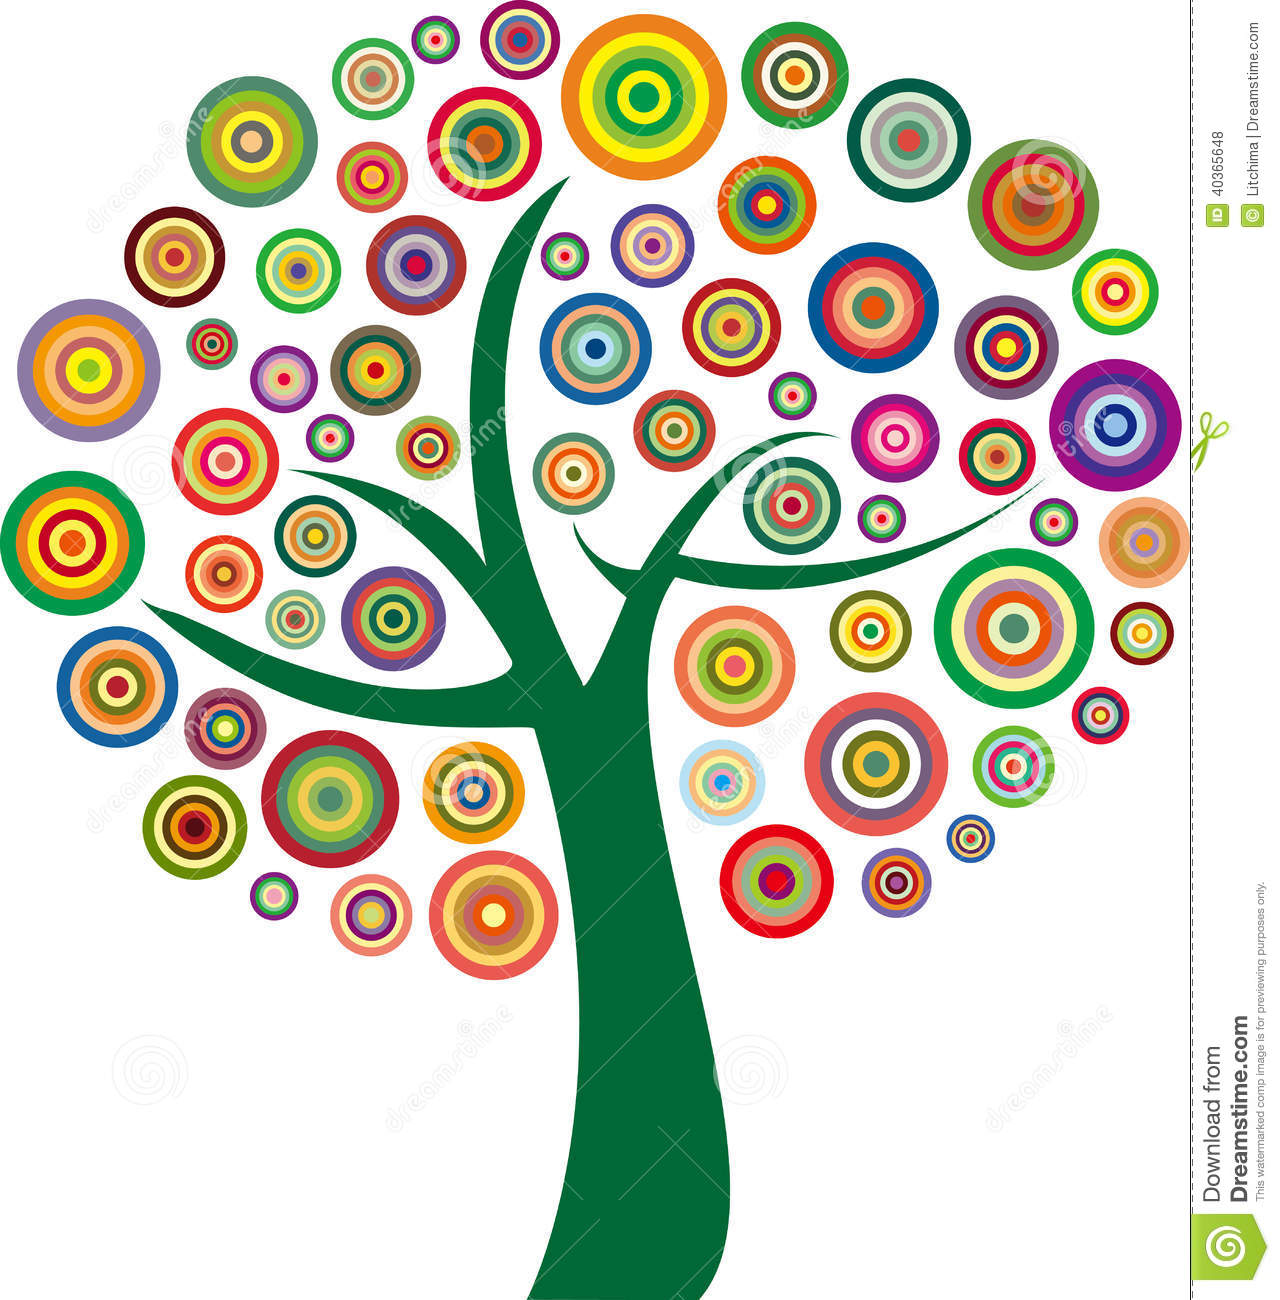 Vector colorful tree stock vector. Illustration of circular - 40365648